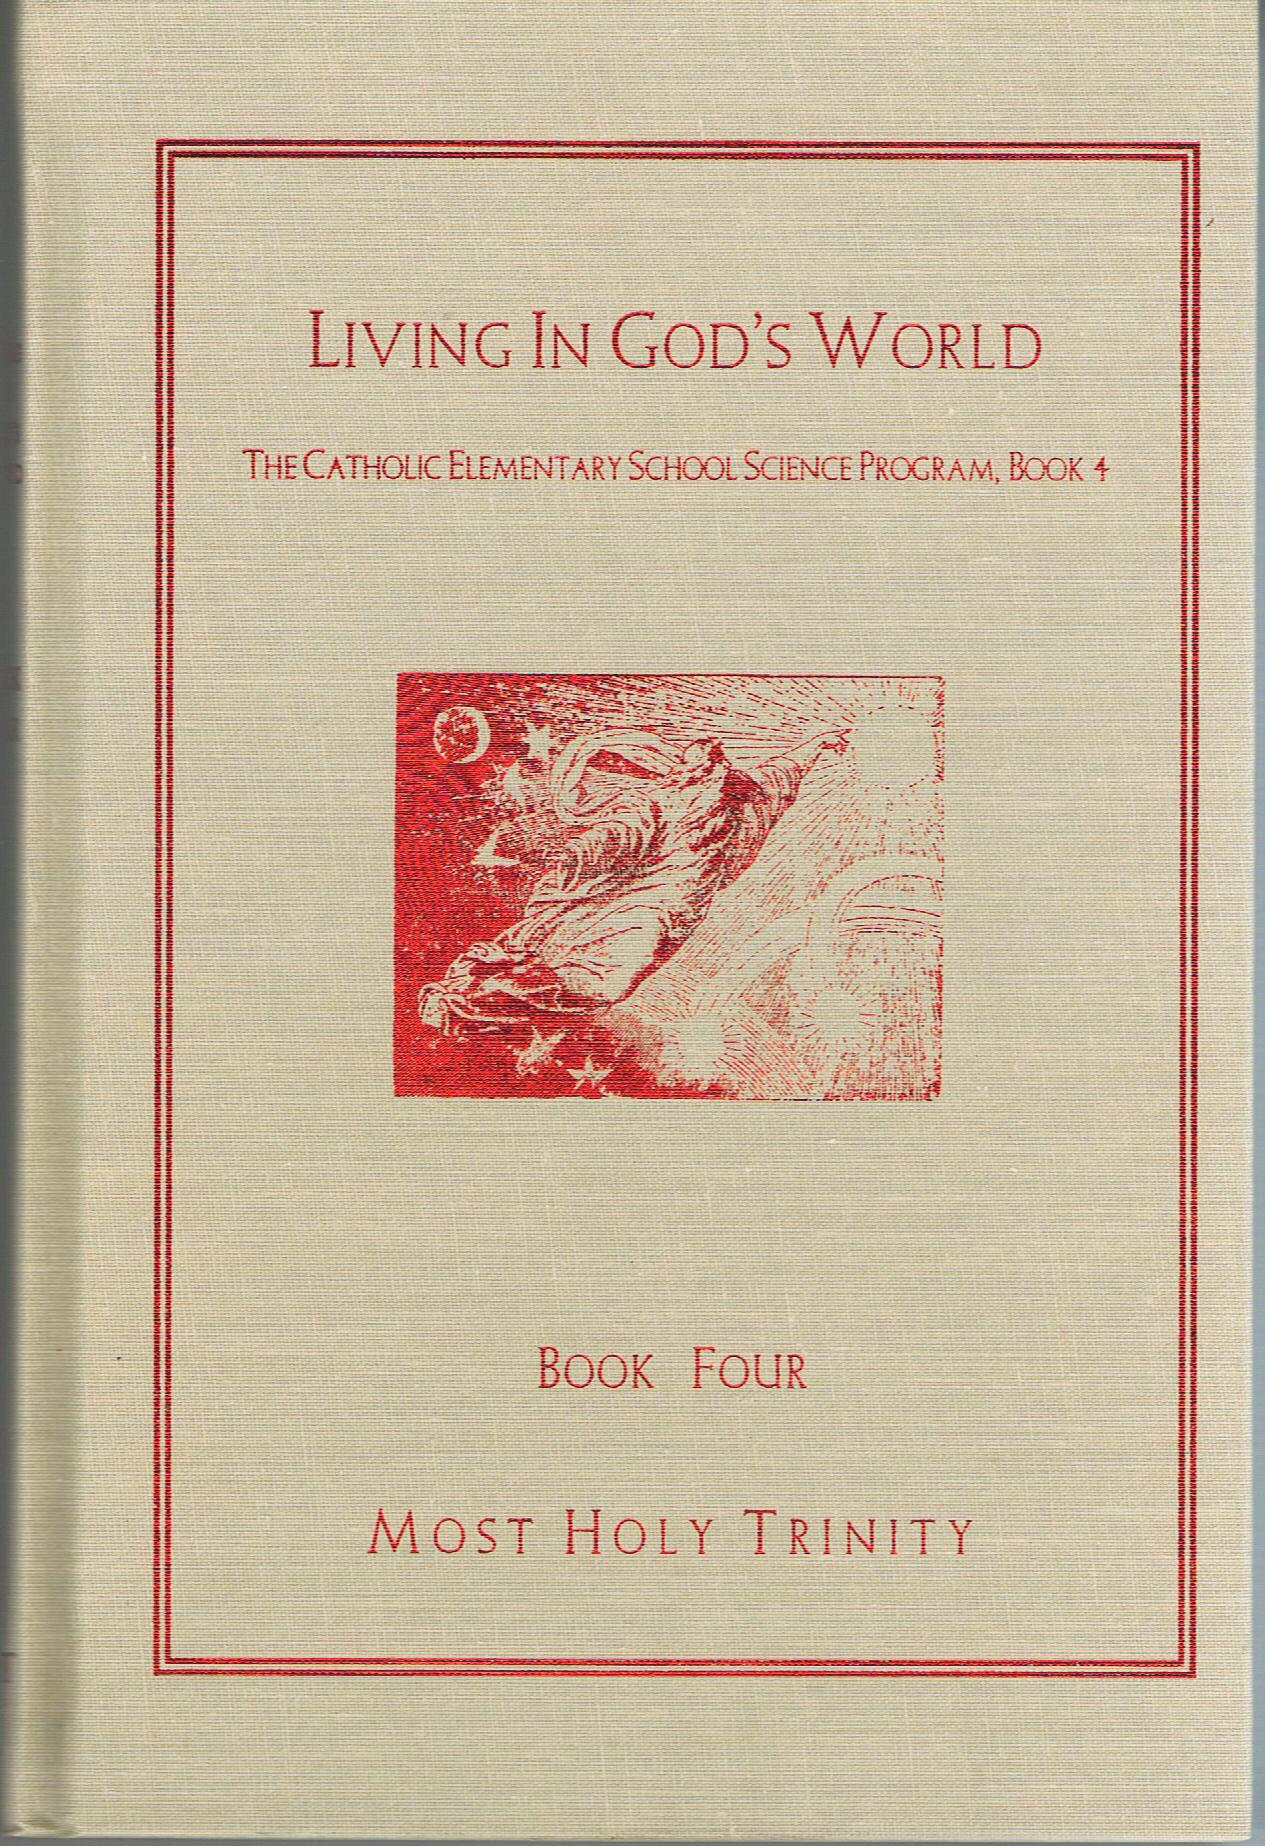 Image for Living in God's World (The Catholic Elementary School Science Program, Book 4)